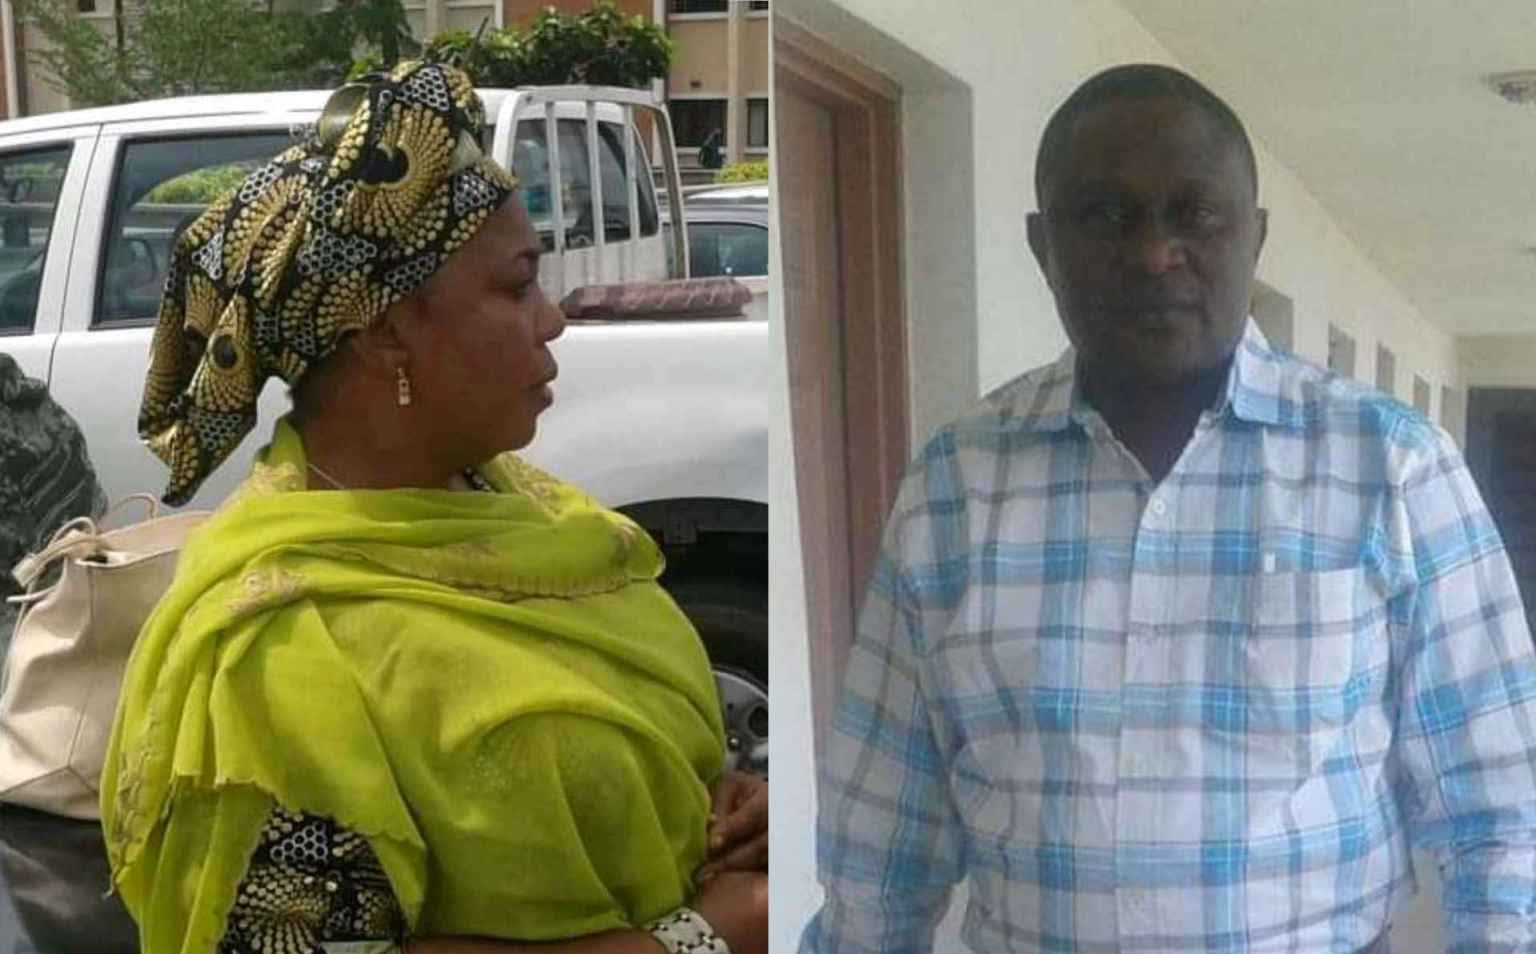 Trial Of Alleged N100m Kwara Bursary Rip-off Adjourned Due To Counsel's Absence In Courtroom